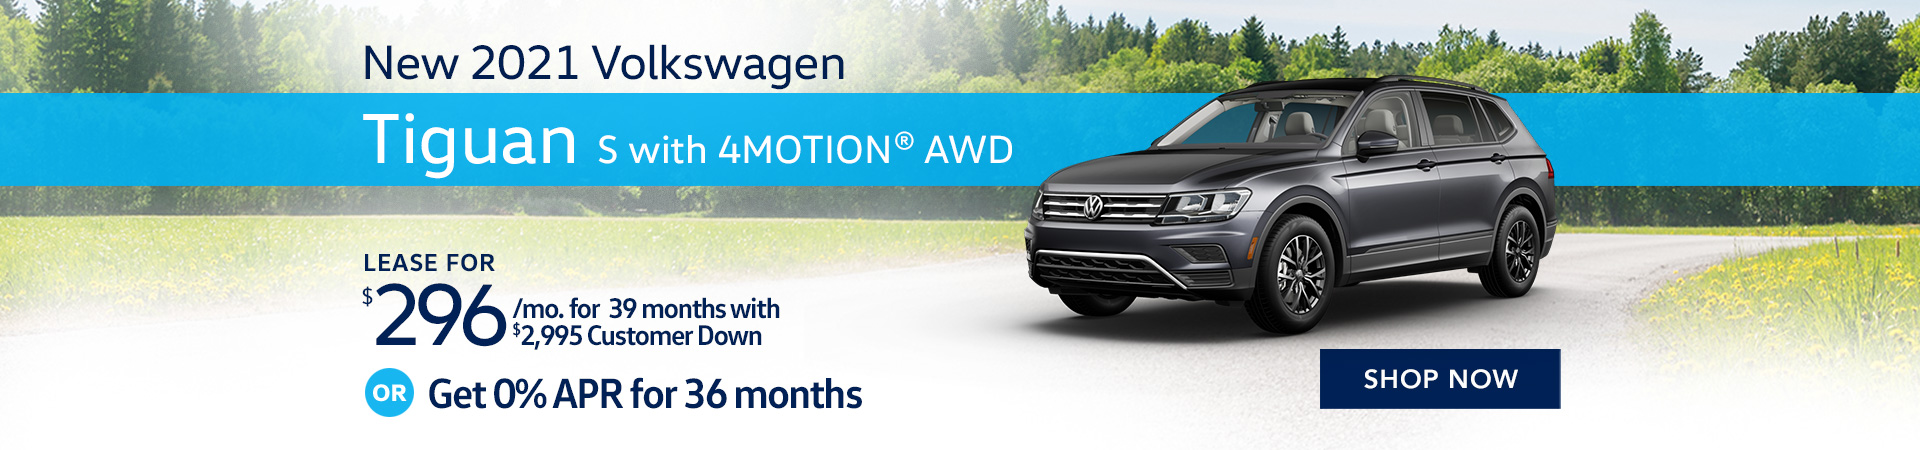 BVW_1920x450_New 2021 Volkswagen Tiguan S with 4MOTION® AWD _07'21